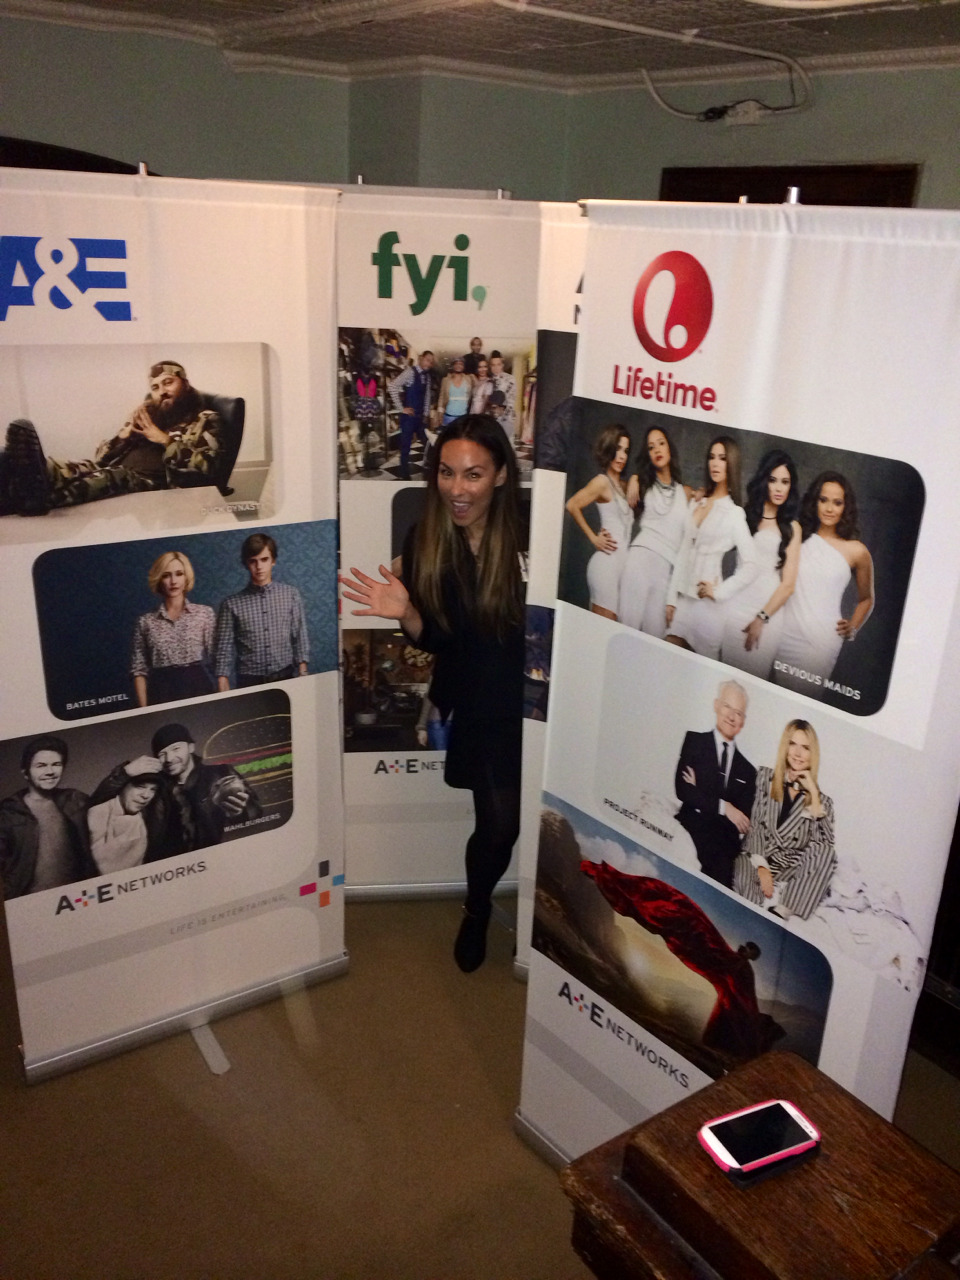 Peekaboo! Lovin' me some #bannerstands at A+E Networks Upfront event 2014 #marketing